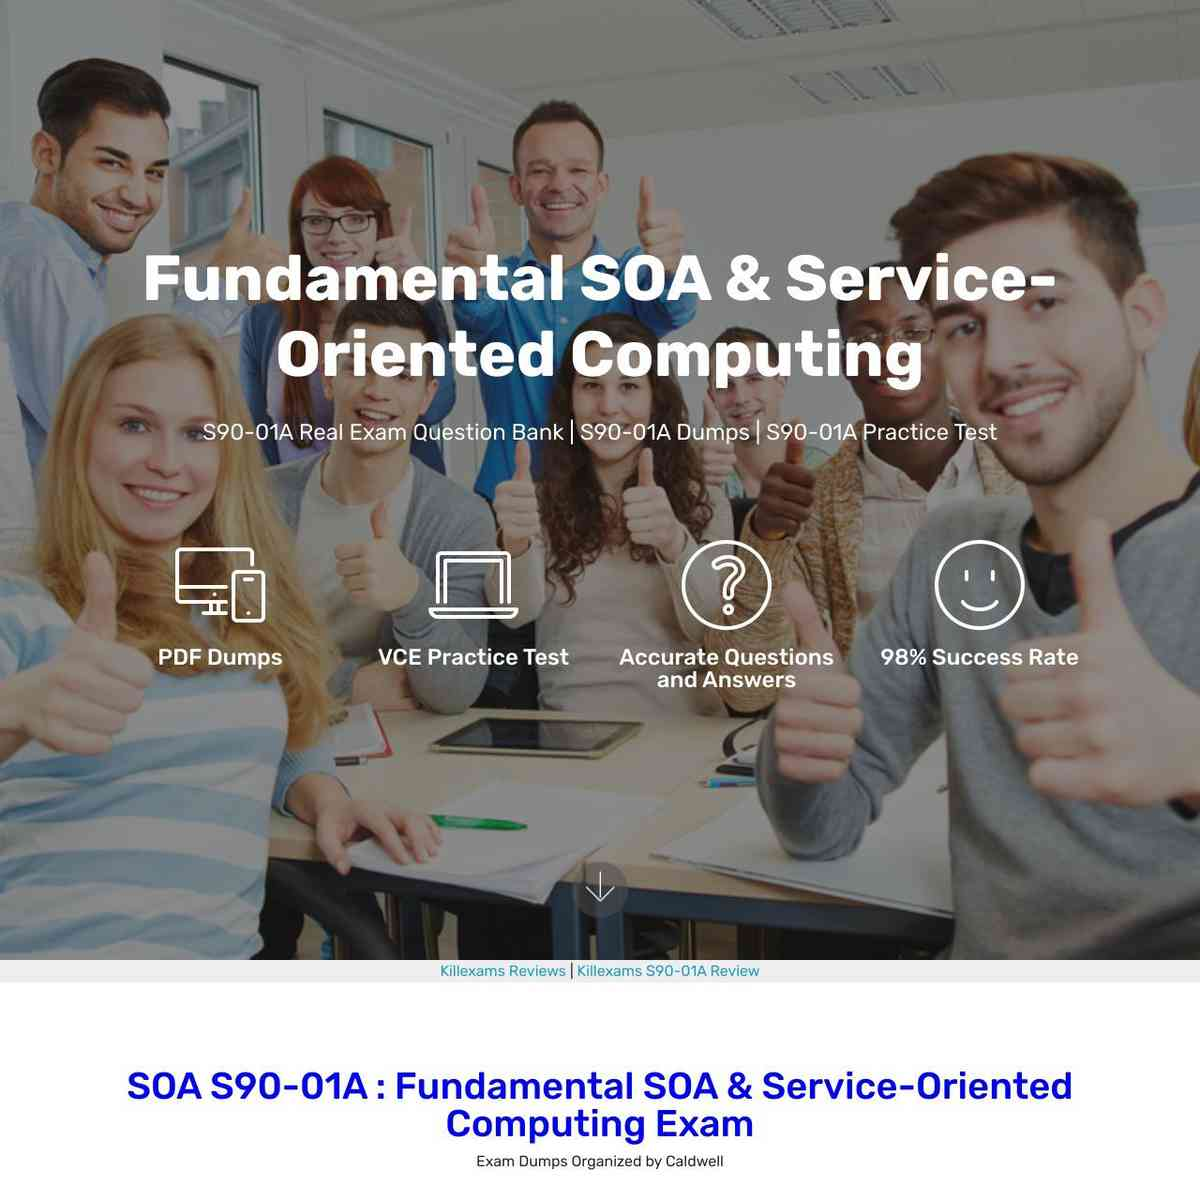 High marks guarantee with these S90-01A Exam Questions